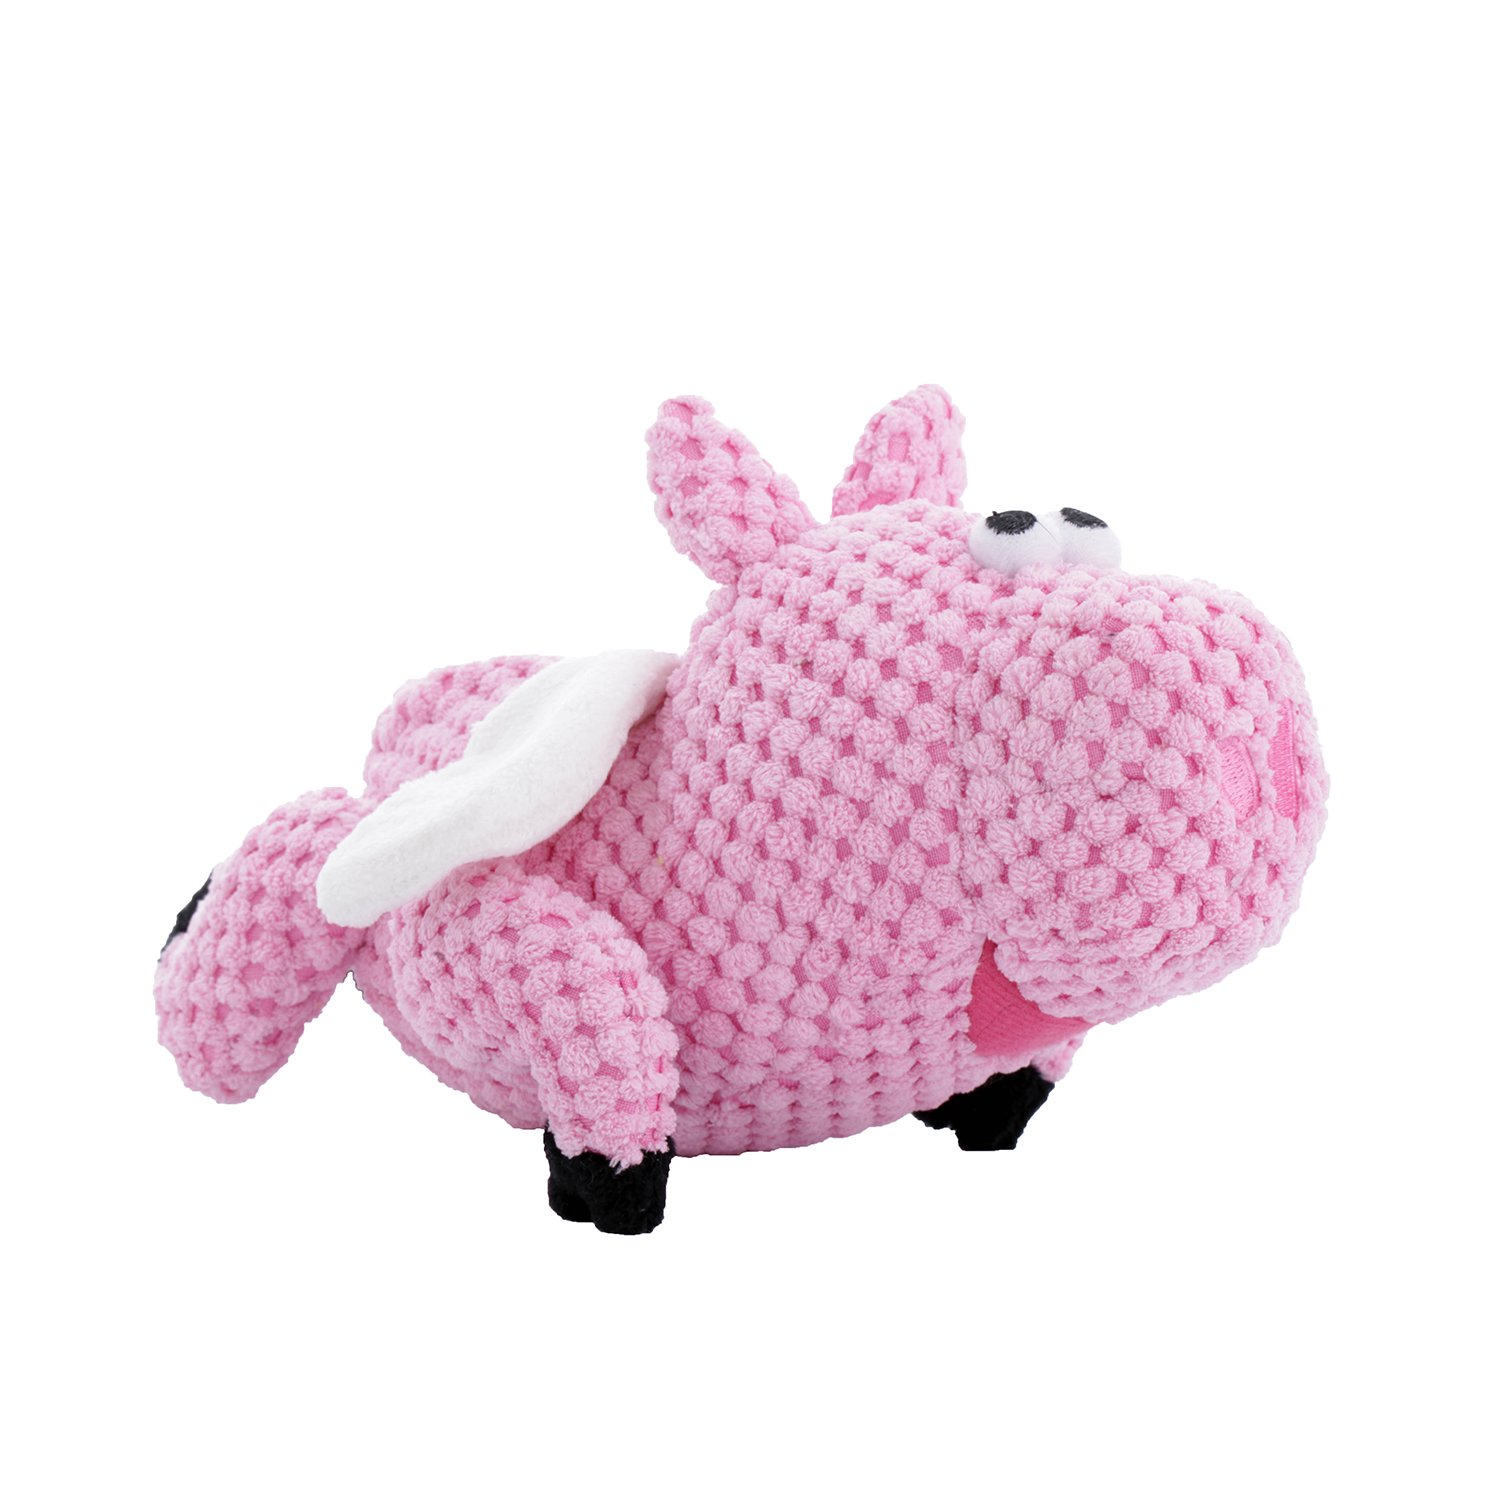 goDog Checkers Flying Pig Dog Toy